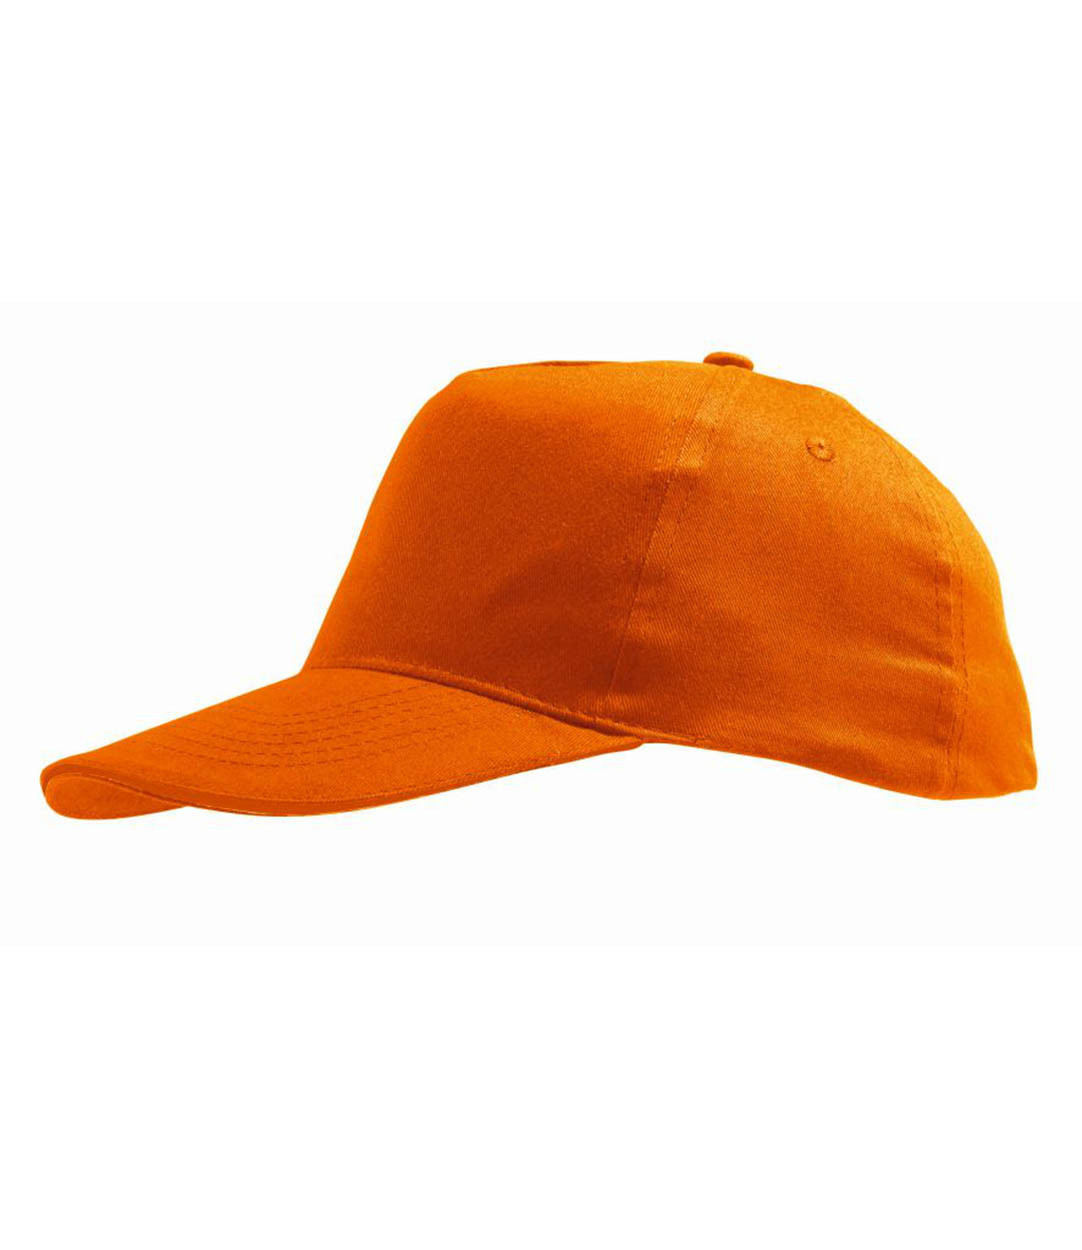 https://www.kwd.nl/media/catalog/product/o/r/oranje_cap_solly_sun.jpg